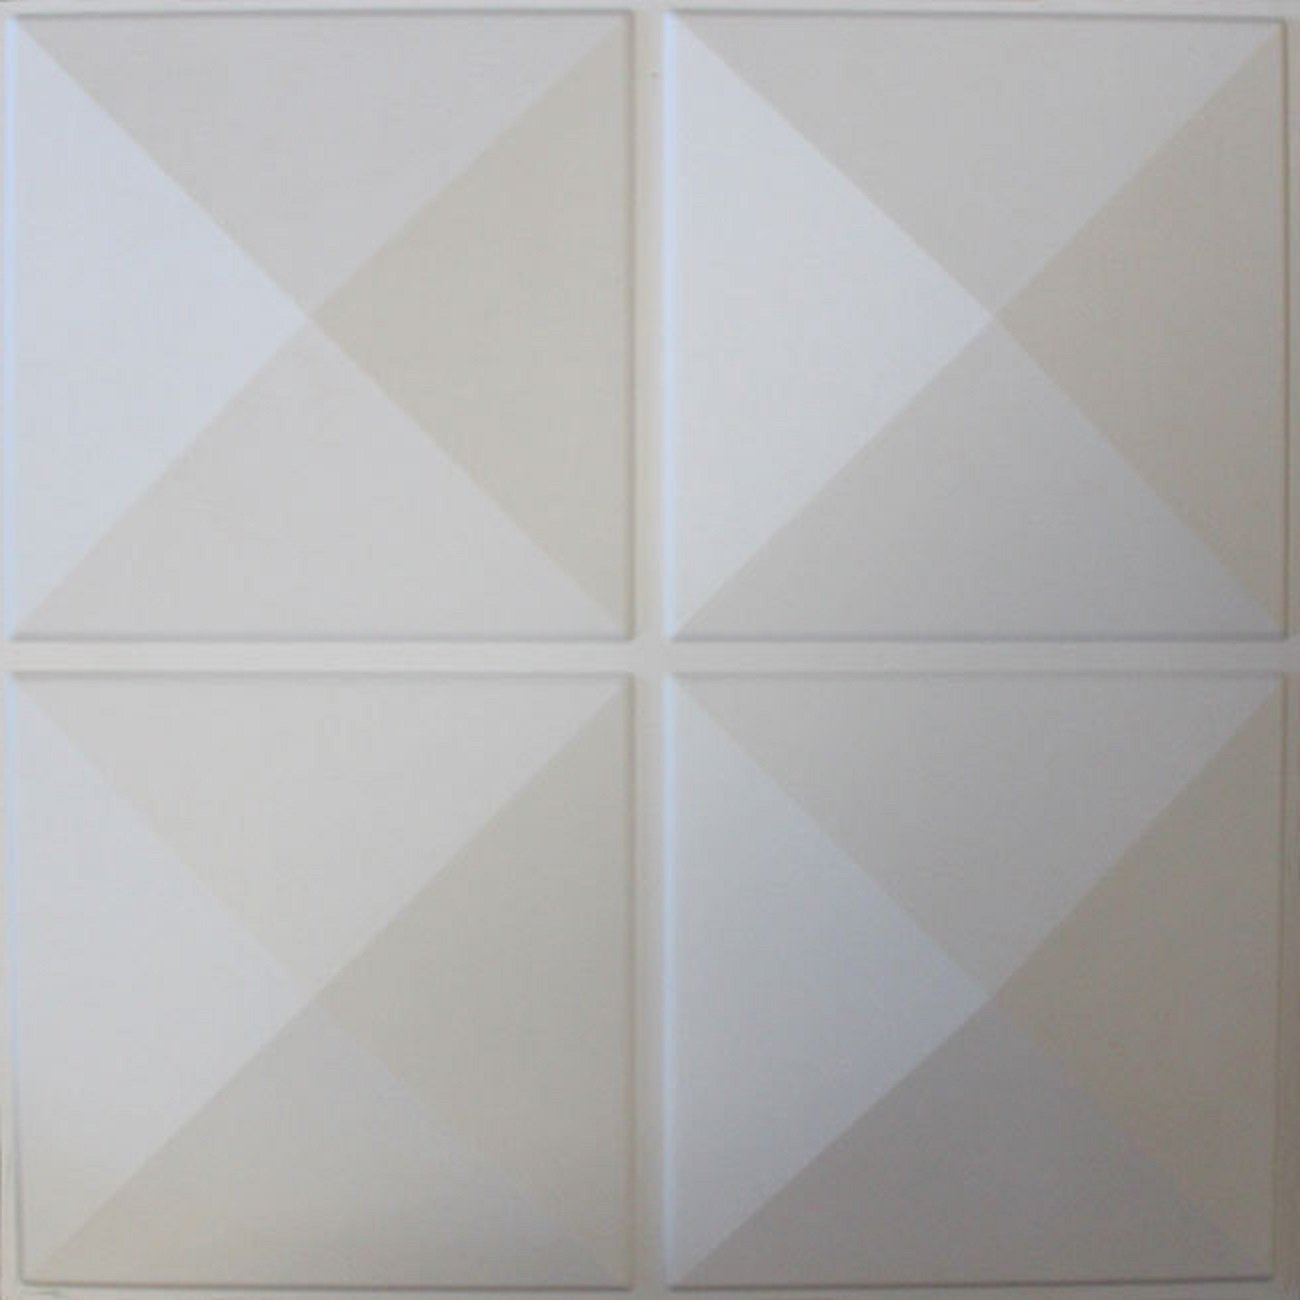 3D Diamond Shapes Themed Wall Panels, High End Elegant Classy Luxury Modern Geometric Square Block Lines Pattern Wallpaper, Bedroom Living Room Decoration Accent Background, Off White, Set of 10